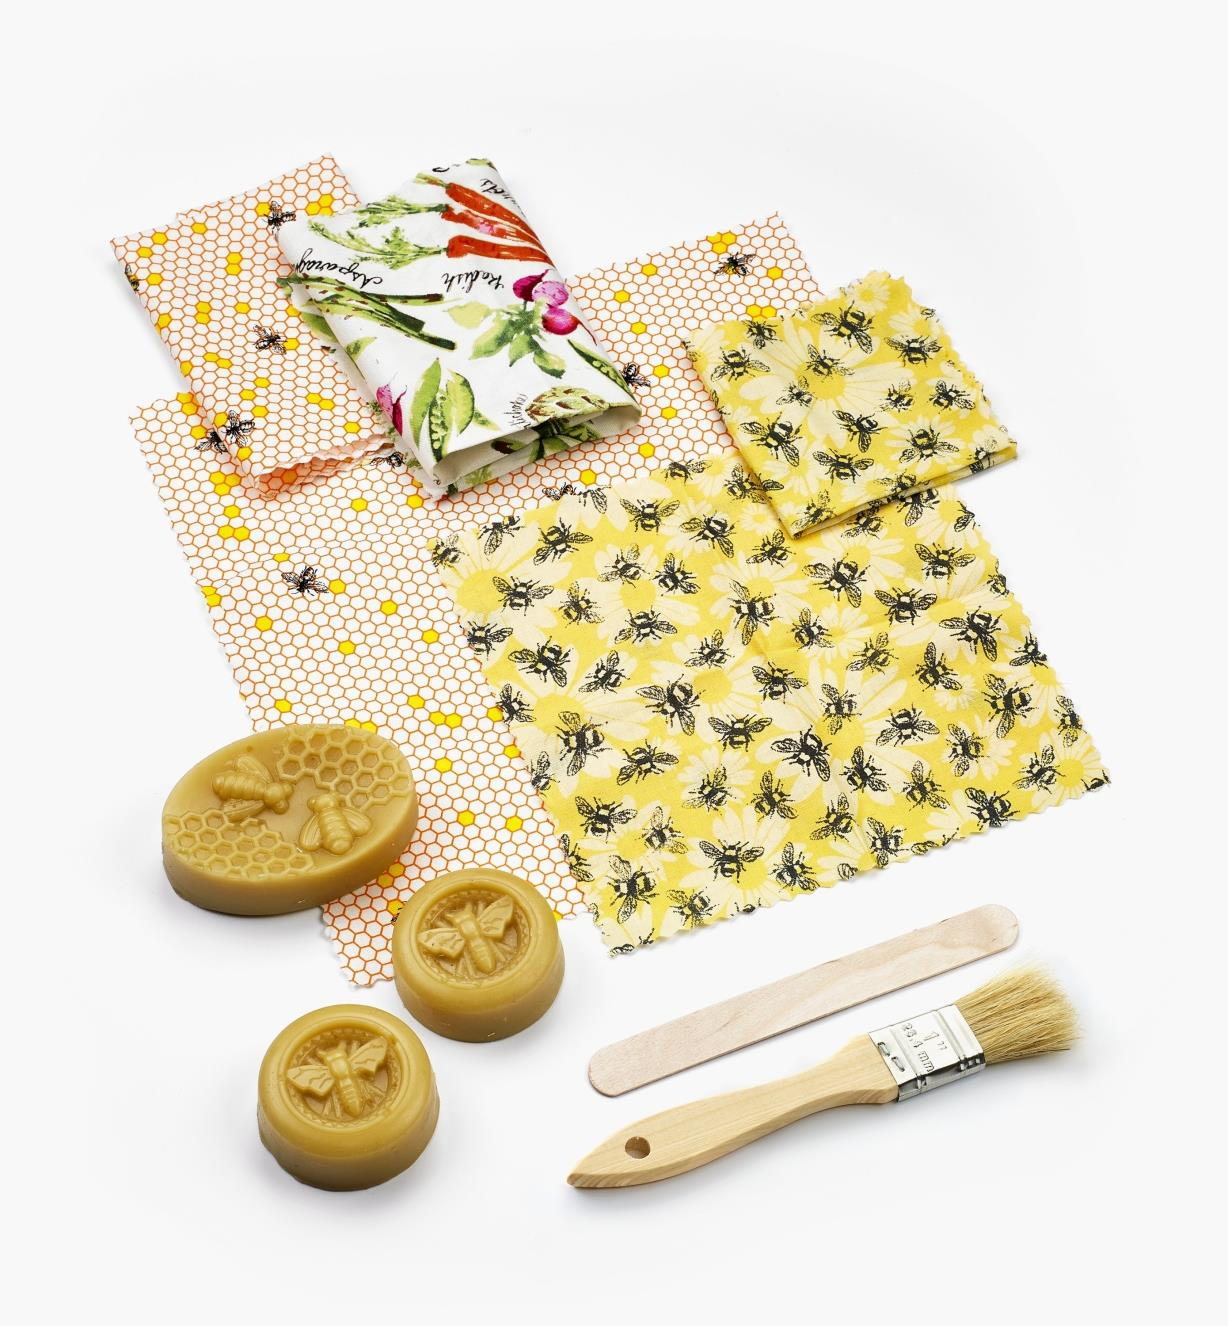 EV820 - DIY Beeswax Wrap Kit